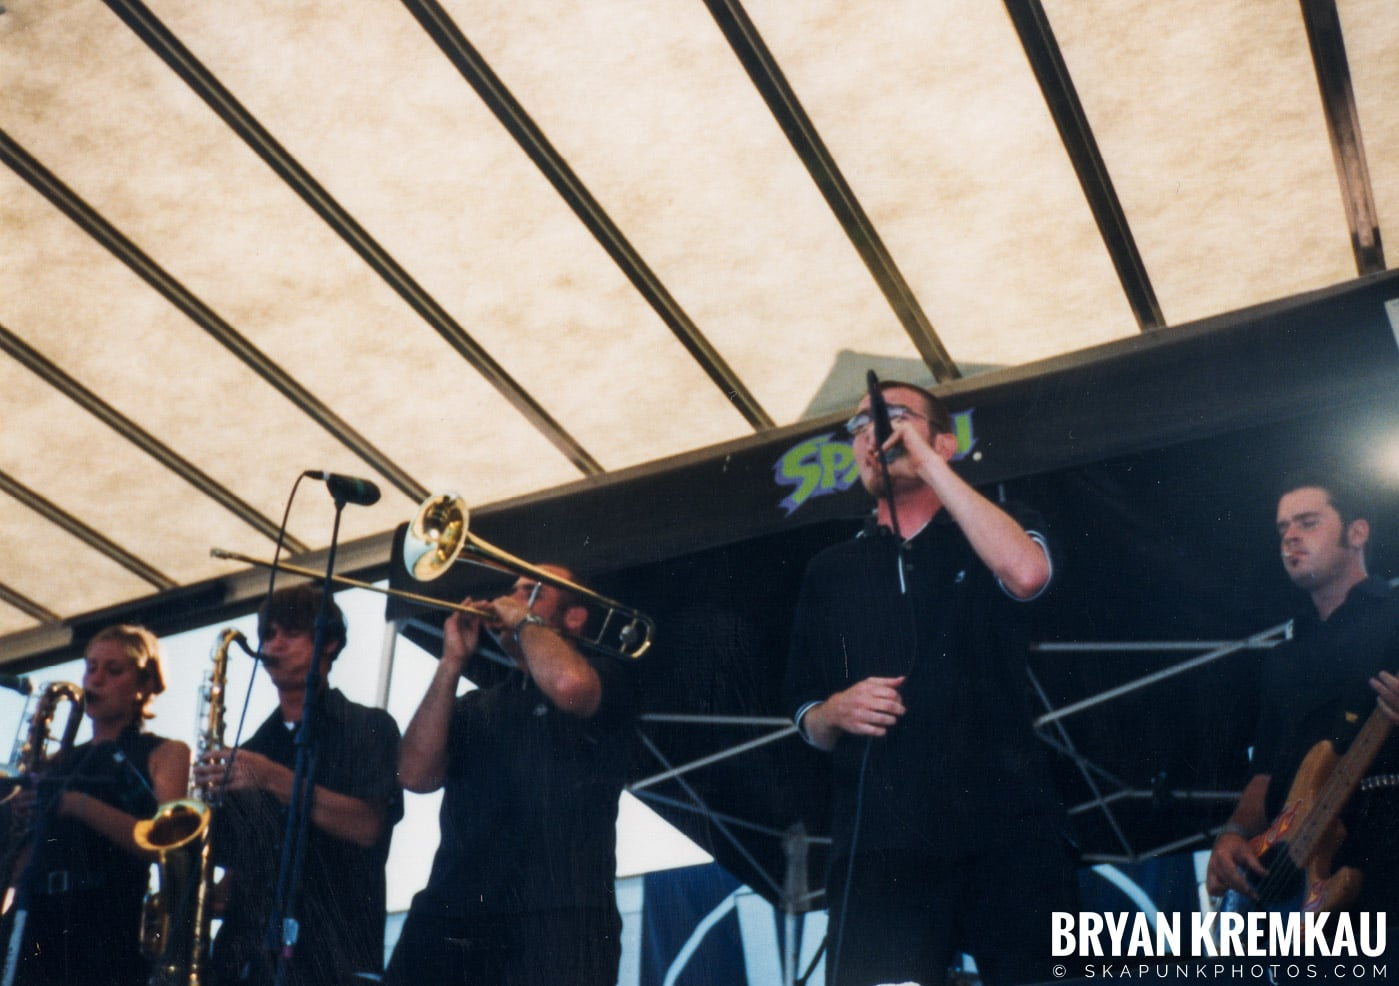 The Smooths @ Vans Warped Tour, Randall's Island, NYC - 8.1.98 (5)